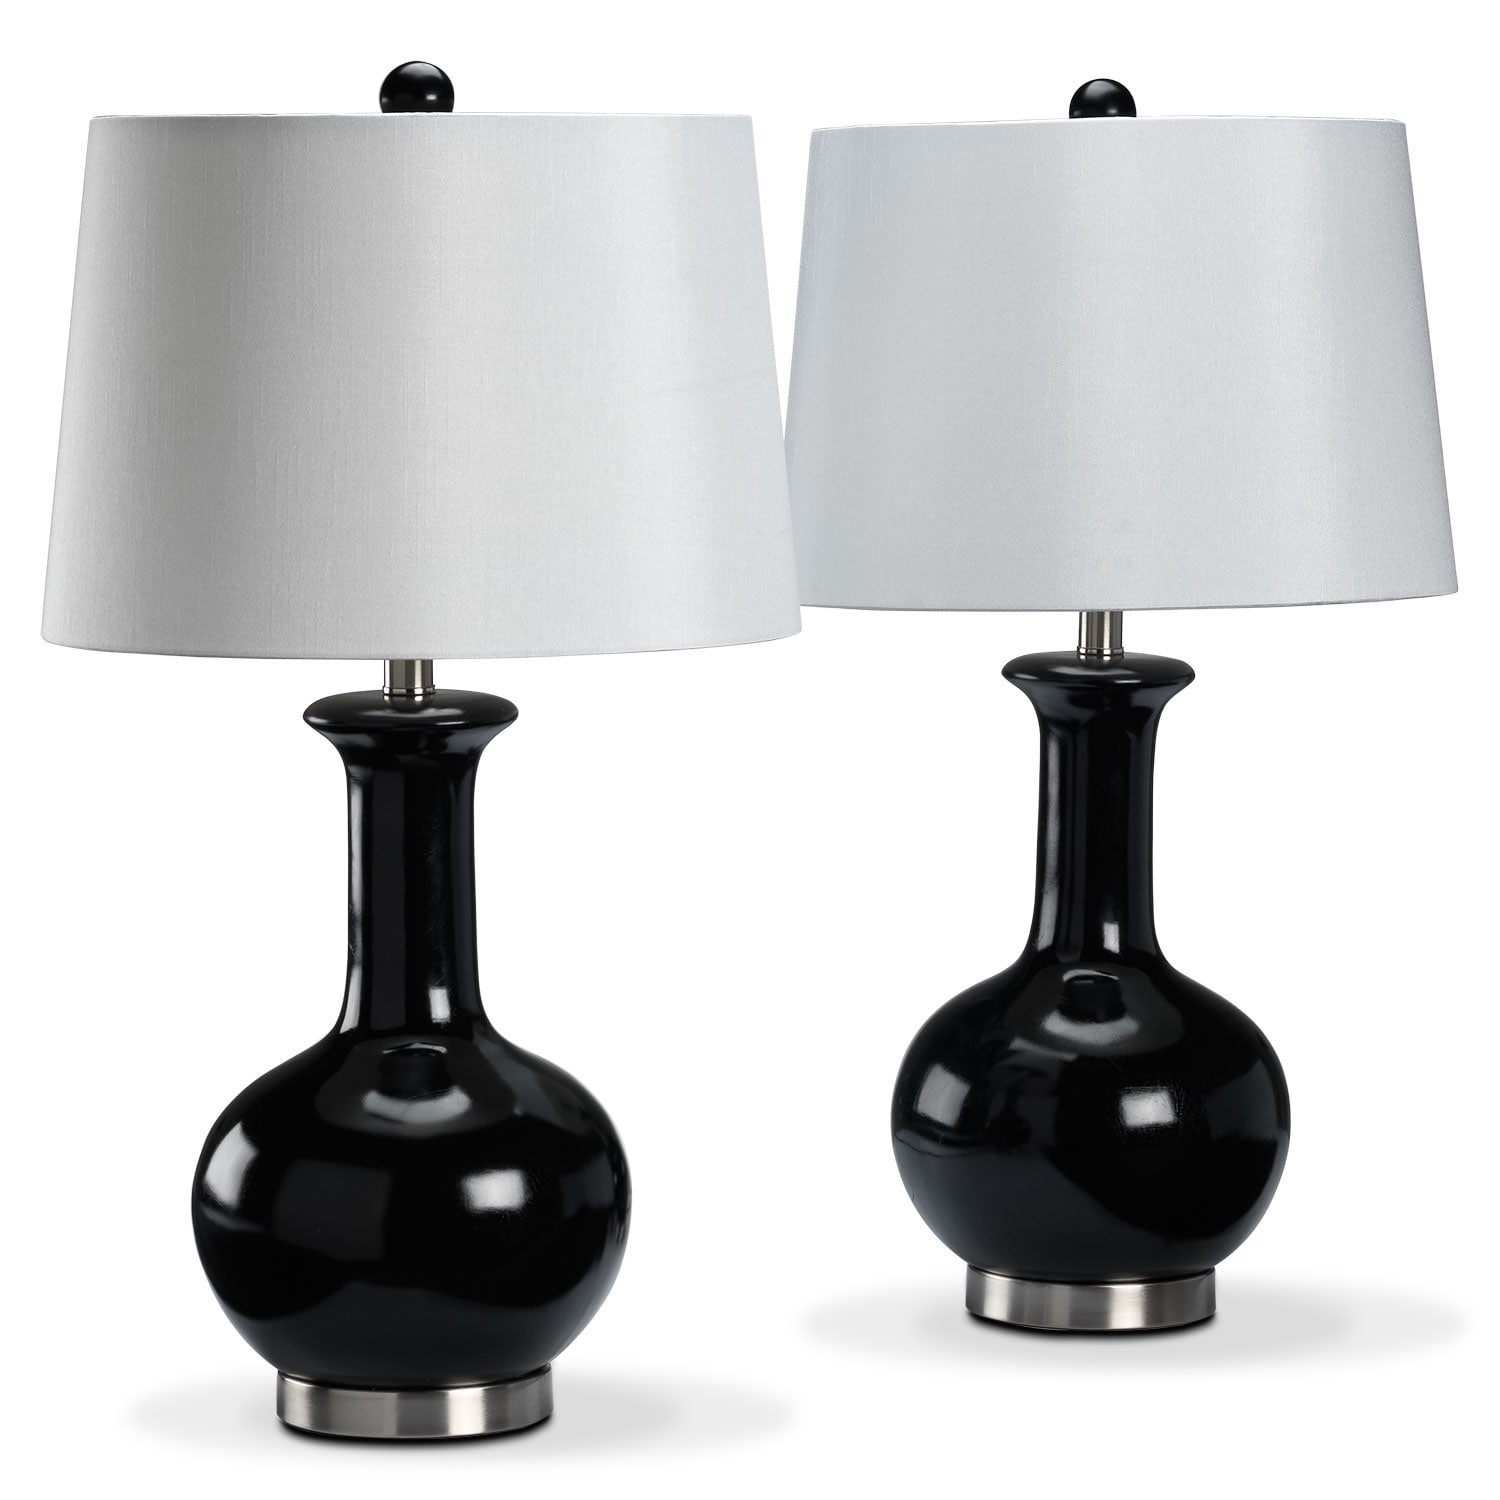 Auden 2-Pack Table Lamps